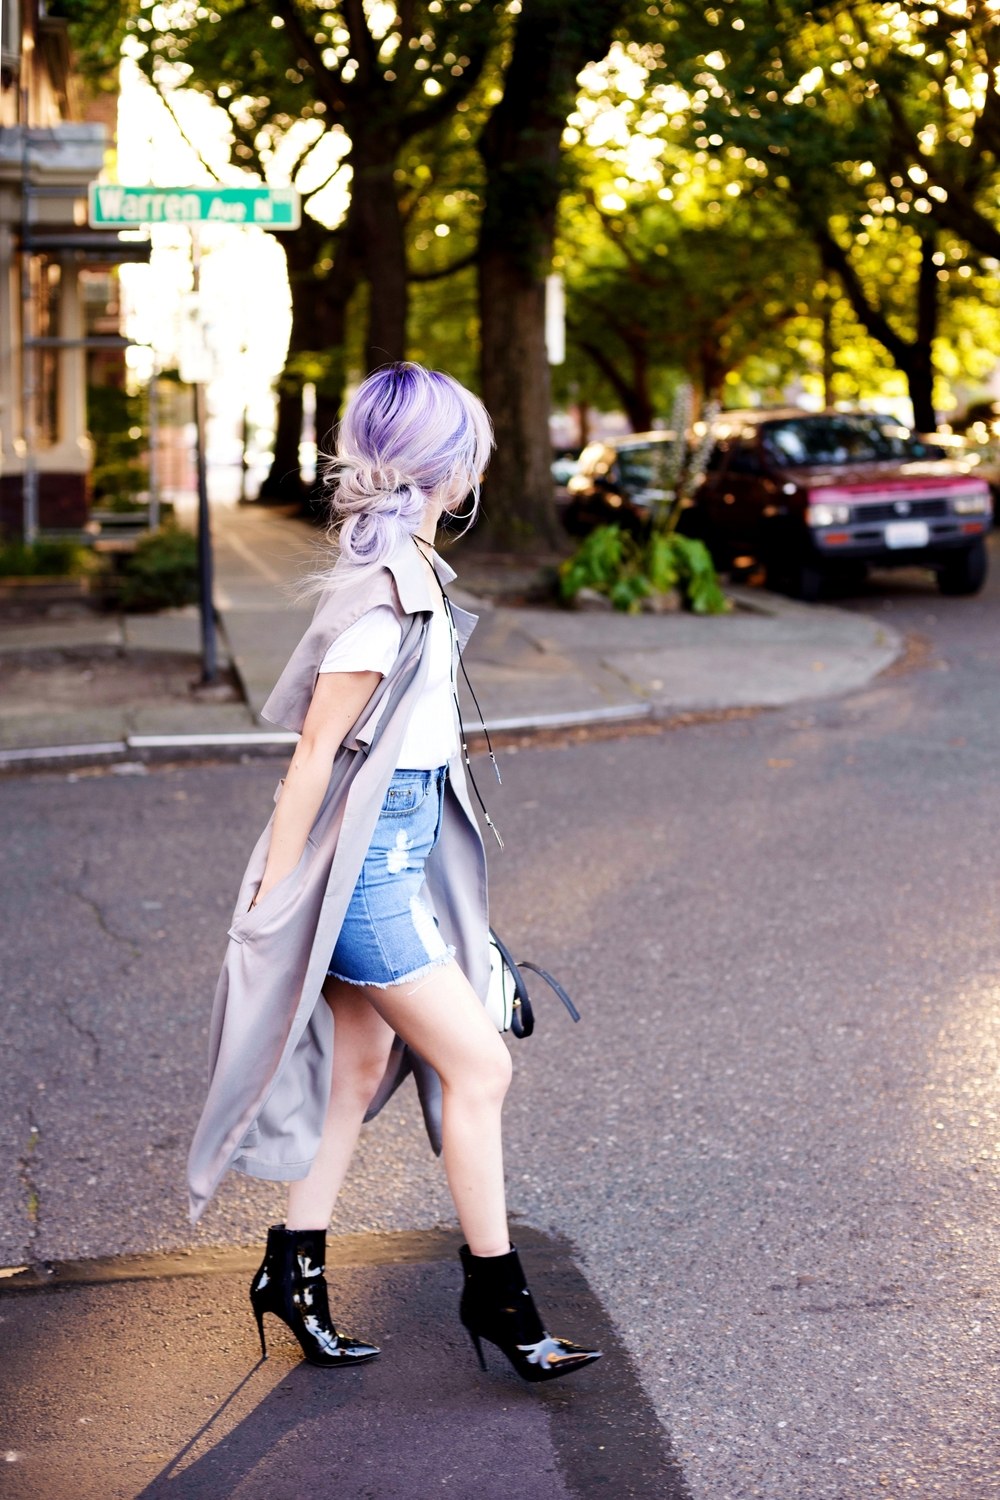 Dezzal Grey Trench Coat_TOPSHOP White T-shirt_She Inside Highwaisted Denim Mini Skit_ALDO Patent Boots_ZARA Mini Bag_Suede Choker_Daniel Wellington Watch_Aikas Love Cloeset_Seattle Fashion Blogger from Japan_Lavender Hair_Messy low bun Hair 2